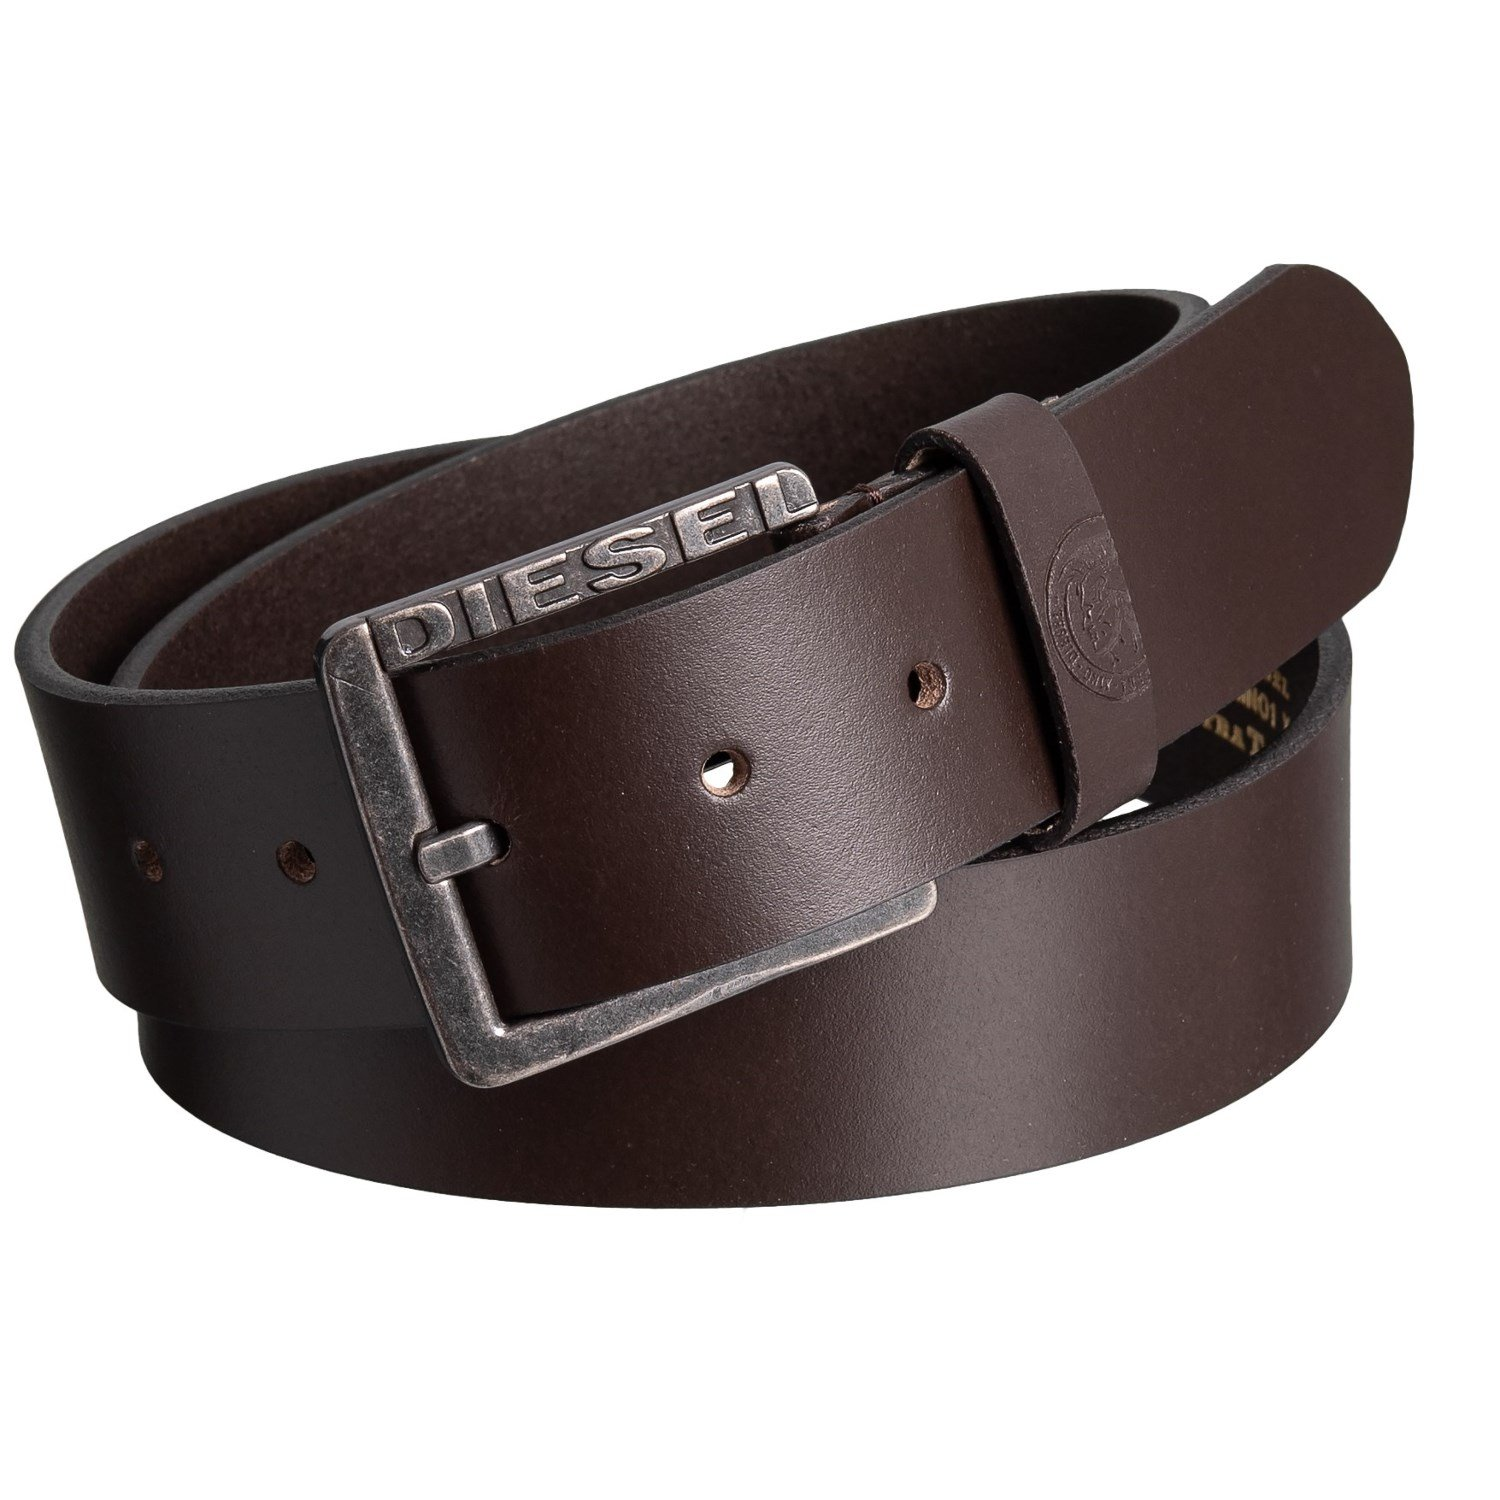 Diesel Men's Vintage Buffalo Leather Belt with Pewter Buckle Dark Brown Size 36